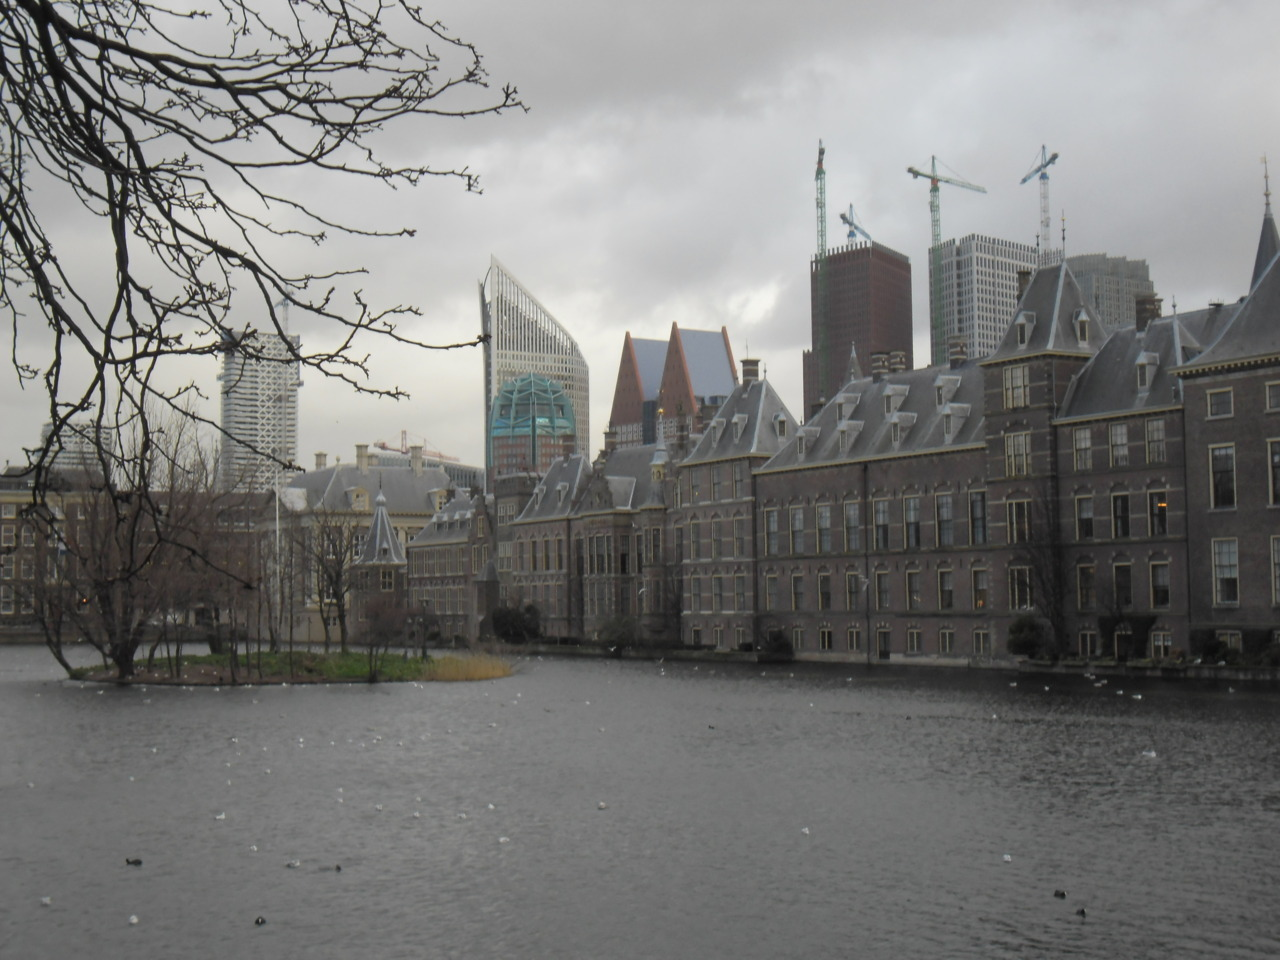 The Hague (Den Haag), Netherlands. Photo taken by me, 7 December 2011.